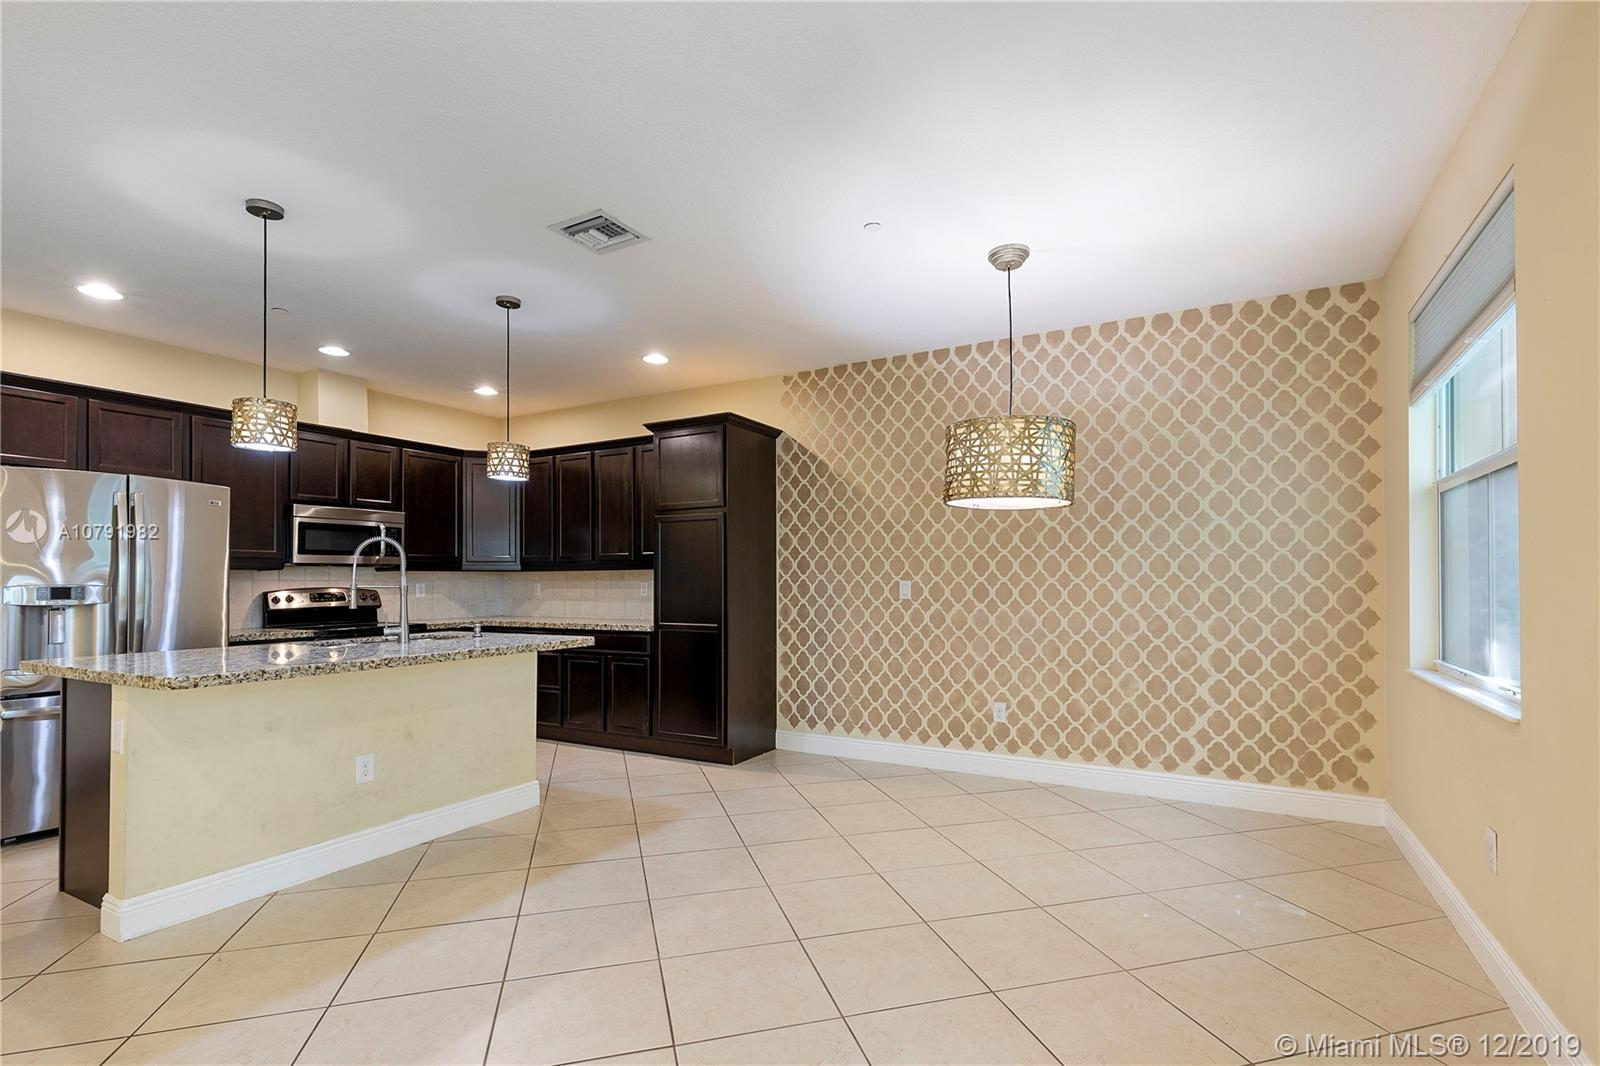 GORGEOUS 3 BEDS/3 BATHS TOWNHOME SITUATED IN COOPER'S CITY MOST SOUGHT AFTER GATED COMMUNITY. THE HOME FEATURES 1 BEDROOM ON THE 1ST FLOOR, HIGHLIGHTED BY DARK WOOD FLOORS THROUGHOUT, 2 CAR GARAGE, HURRICANE IMPACT WINDOWS AND A STATE OF THE ART KITCHEN. A+ RATED SCHOOLS, MINUTES FROM THE FT. LAUDERDALE AIRPORT, AND ALL MAJOR HIGHWAYS.